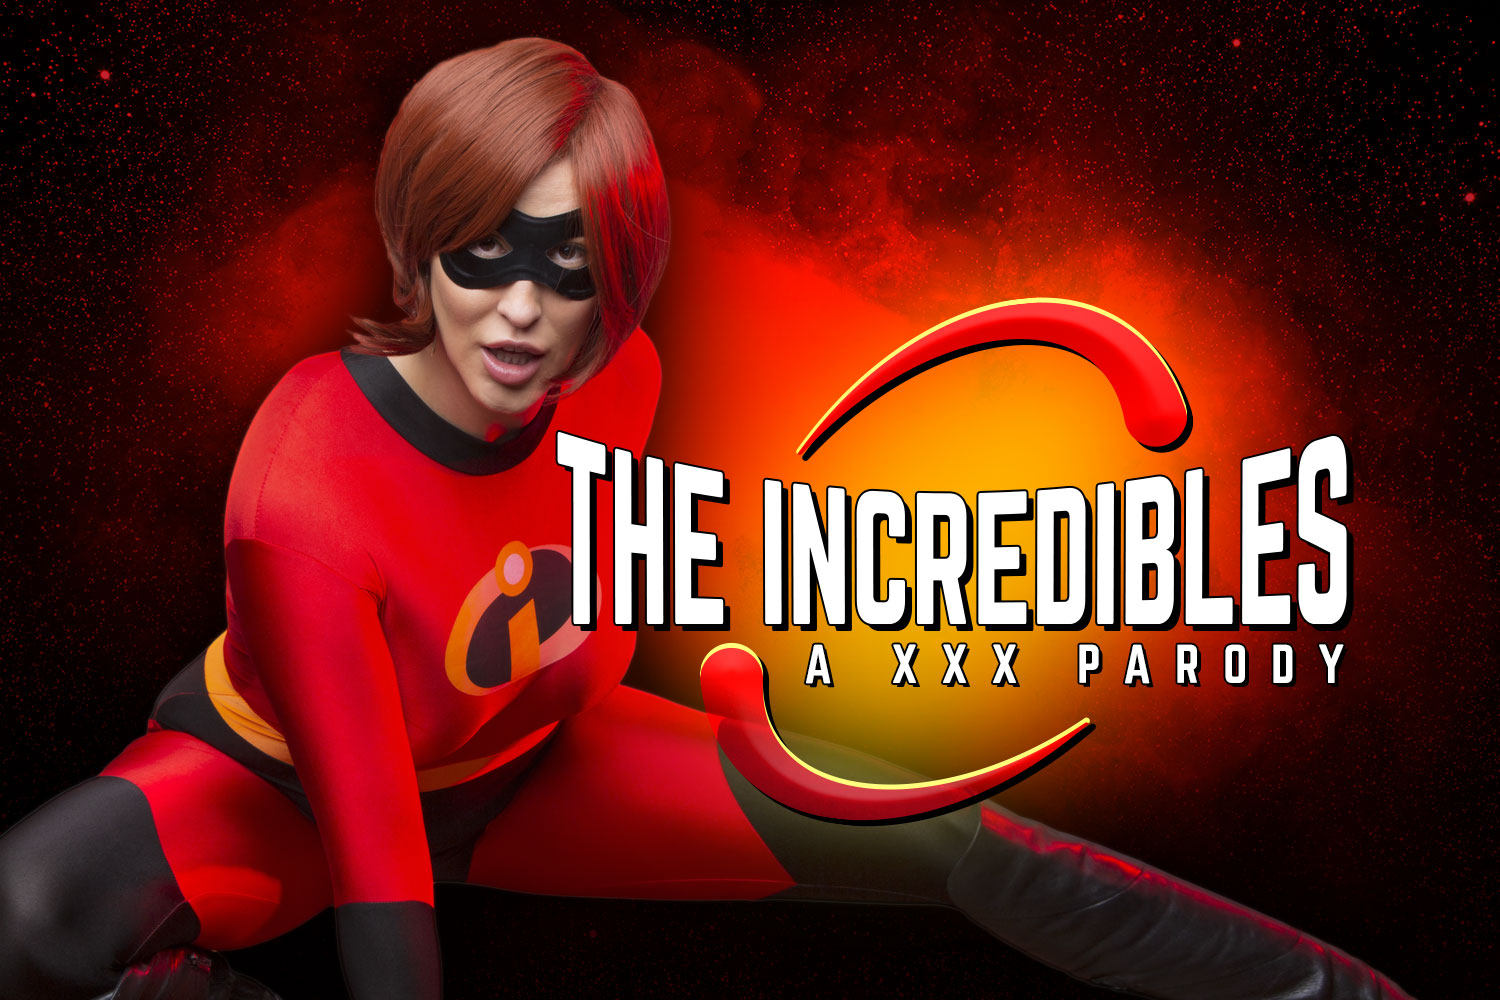 The Incredibles A XXX Parody human and pet sex movies